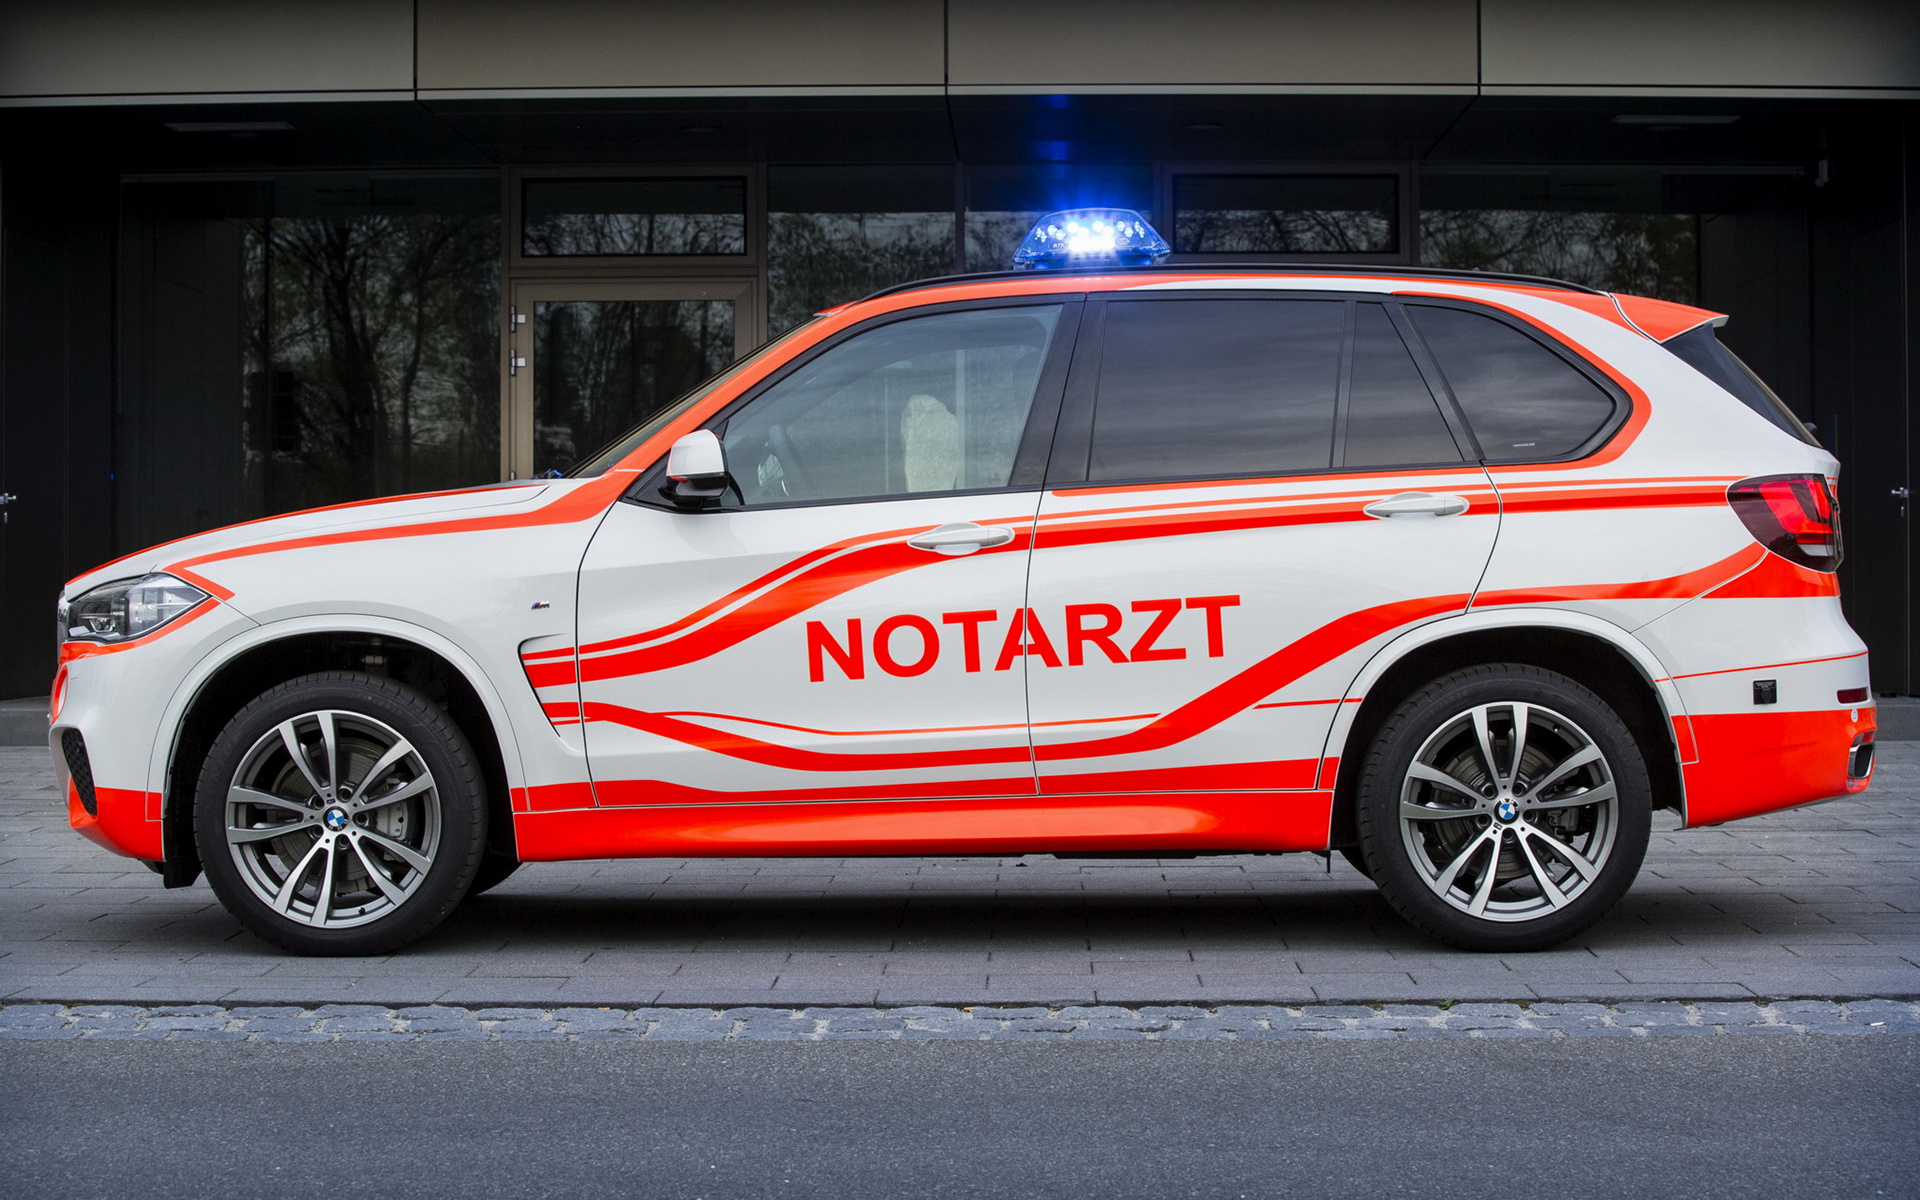 2014 BMW X5 M Sport Notarzt - Wallpapers and HD Images ...